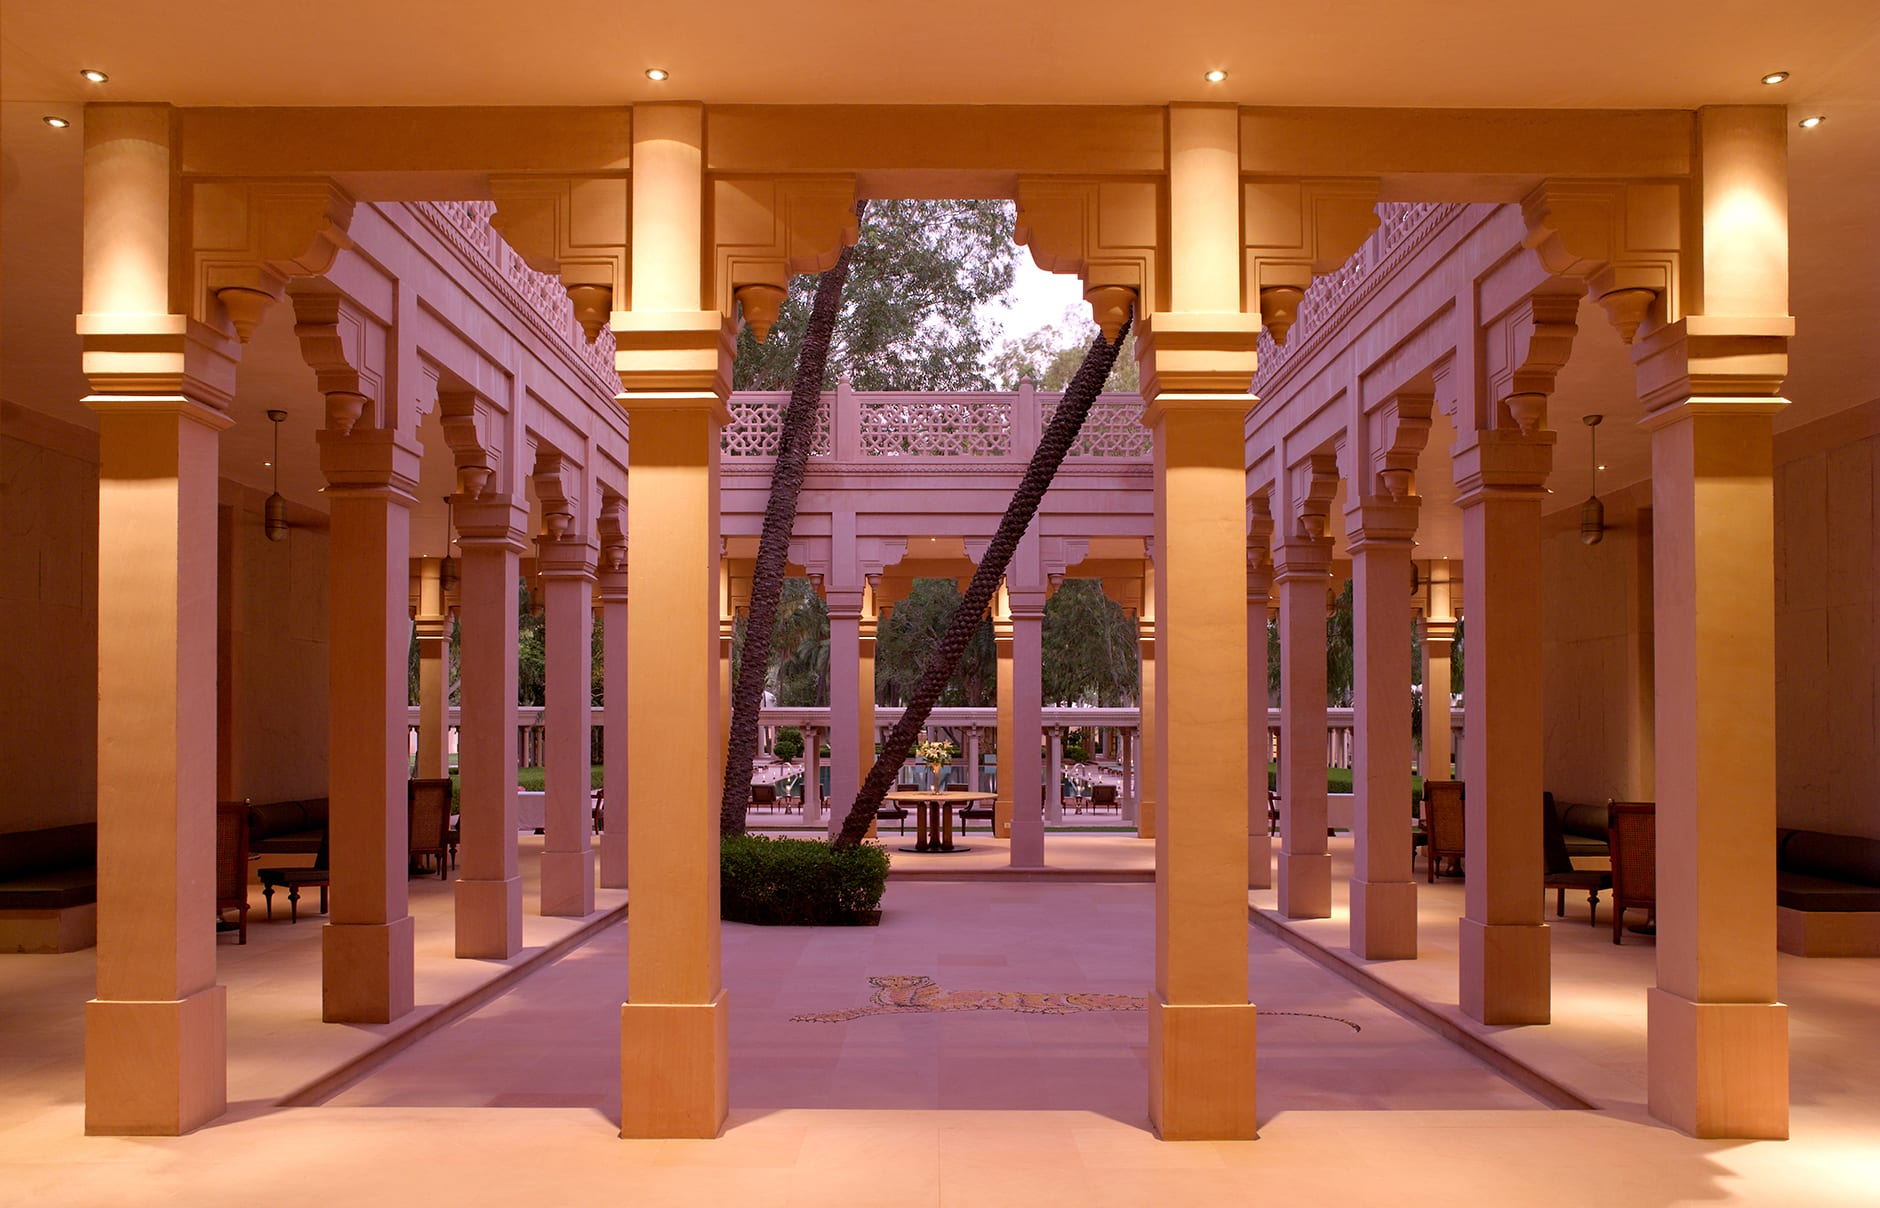 Inner Courtyard. Amanbagh, Alwar, Rajasthan, India. Luxury Hotel Review by TravelPlusStyle. Photo © Aman Resorts